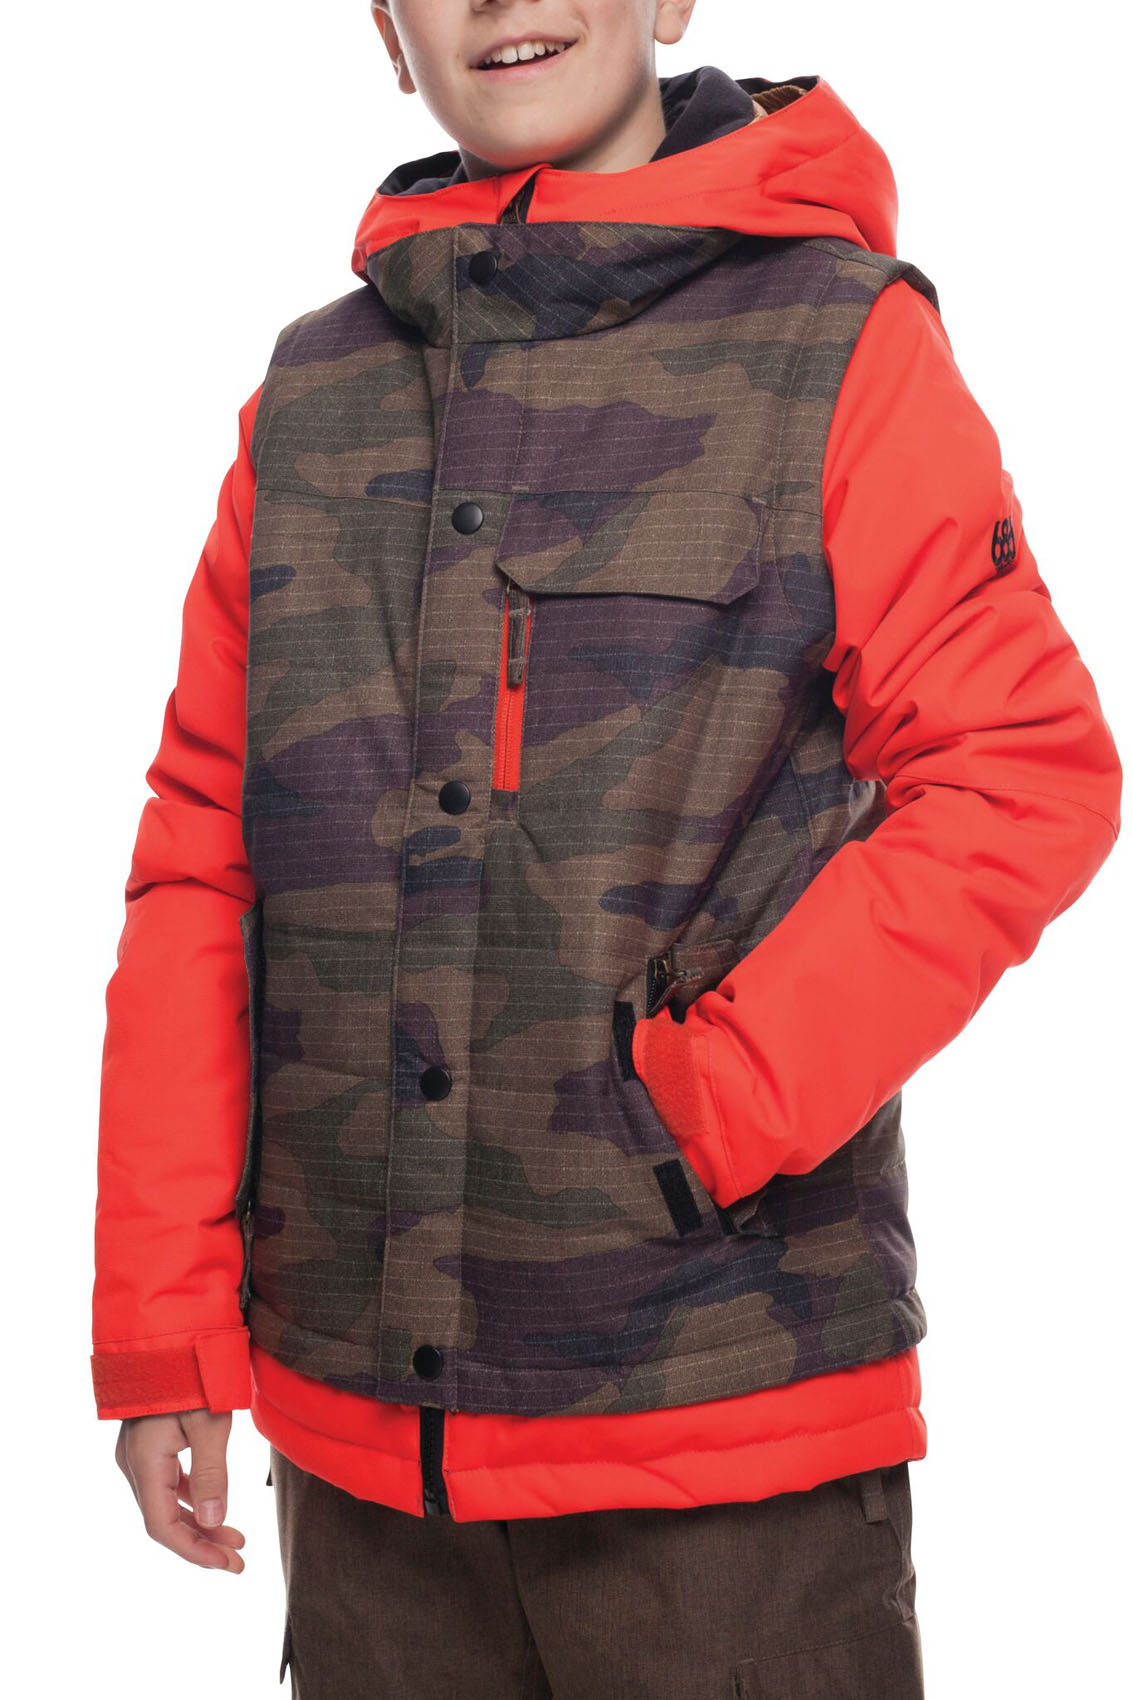 686 Boys Scout Insulated Snowboard Jacket 2019 Infrared Dark Camo Colorblock Large